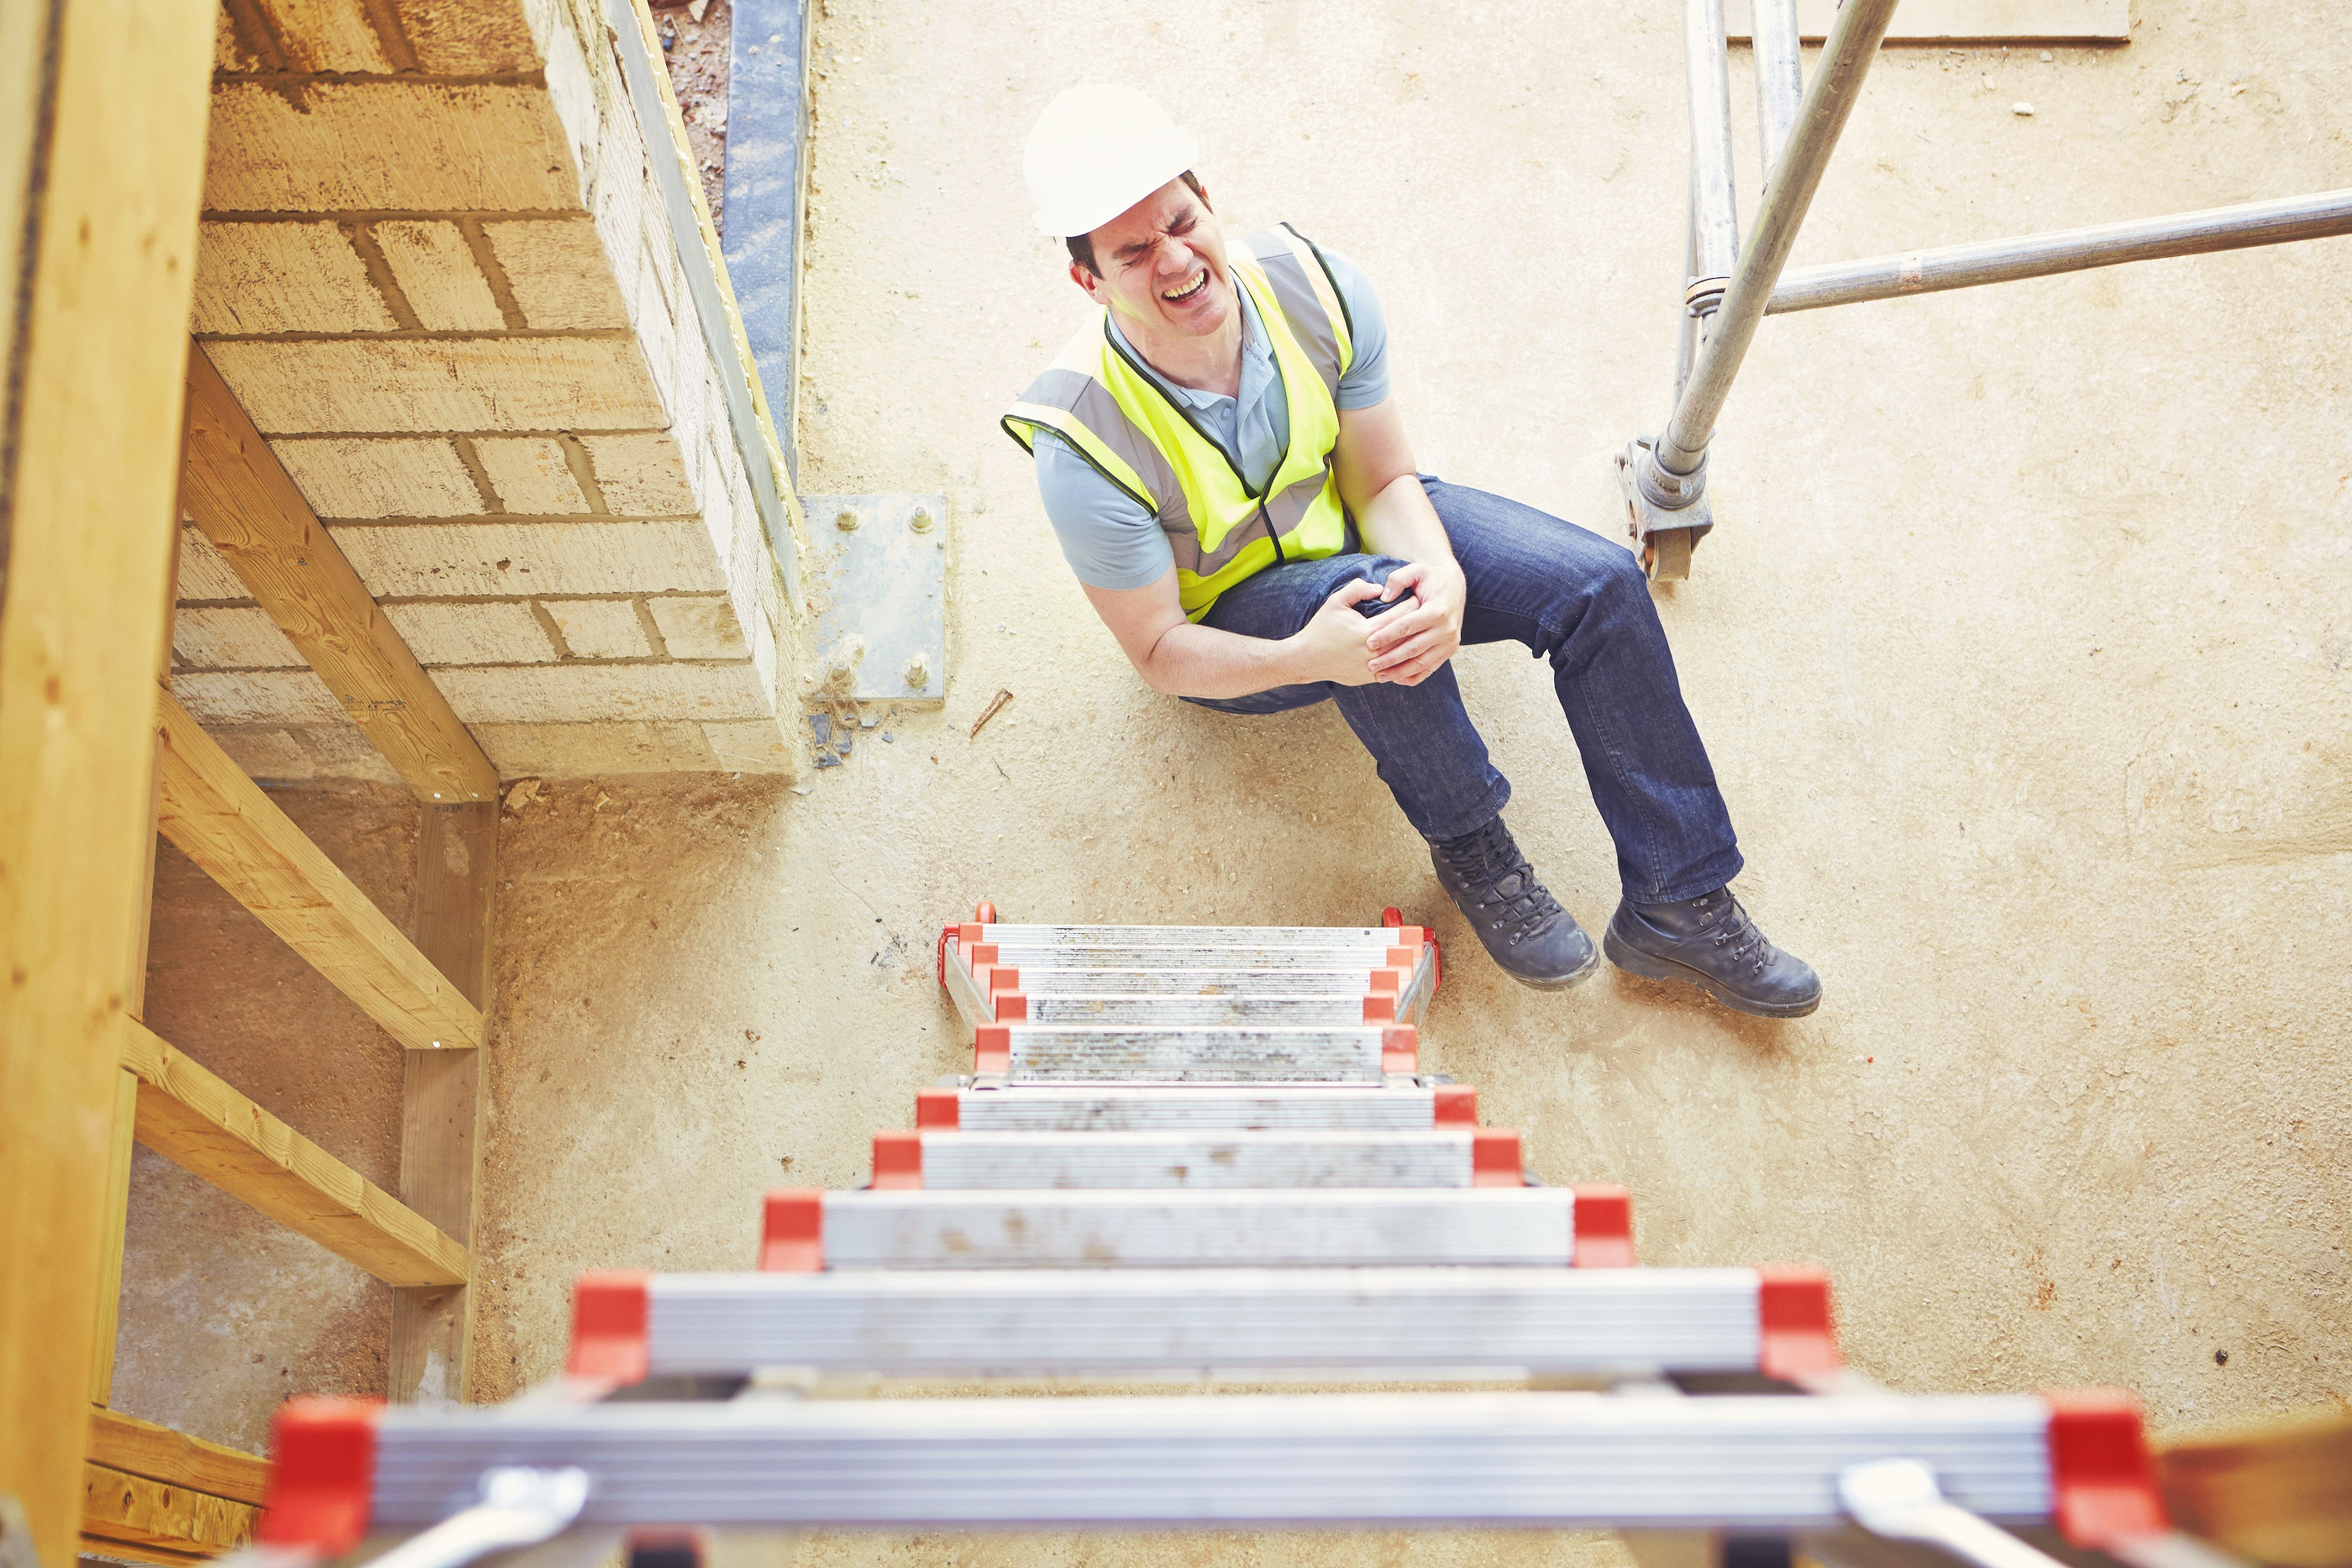 bigstock-Construction-Worker-Falling-Of-68401633_Filters.jpg